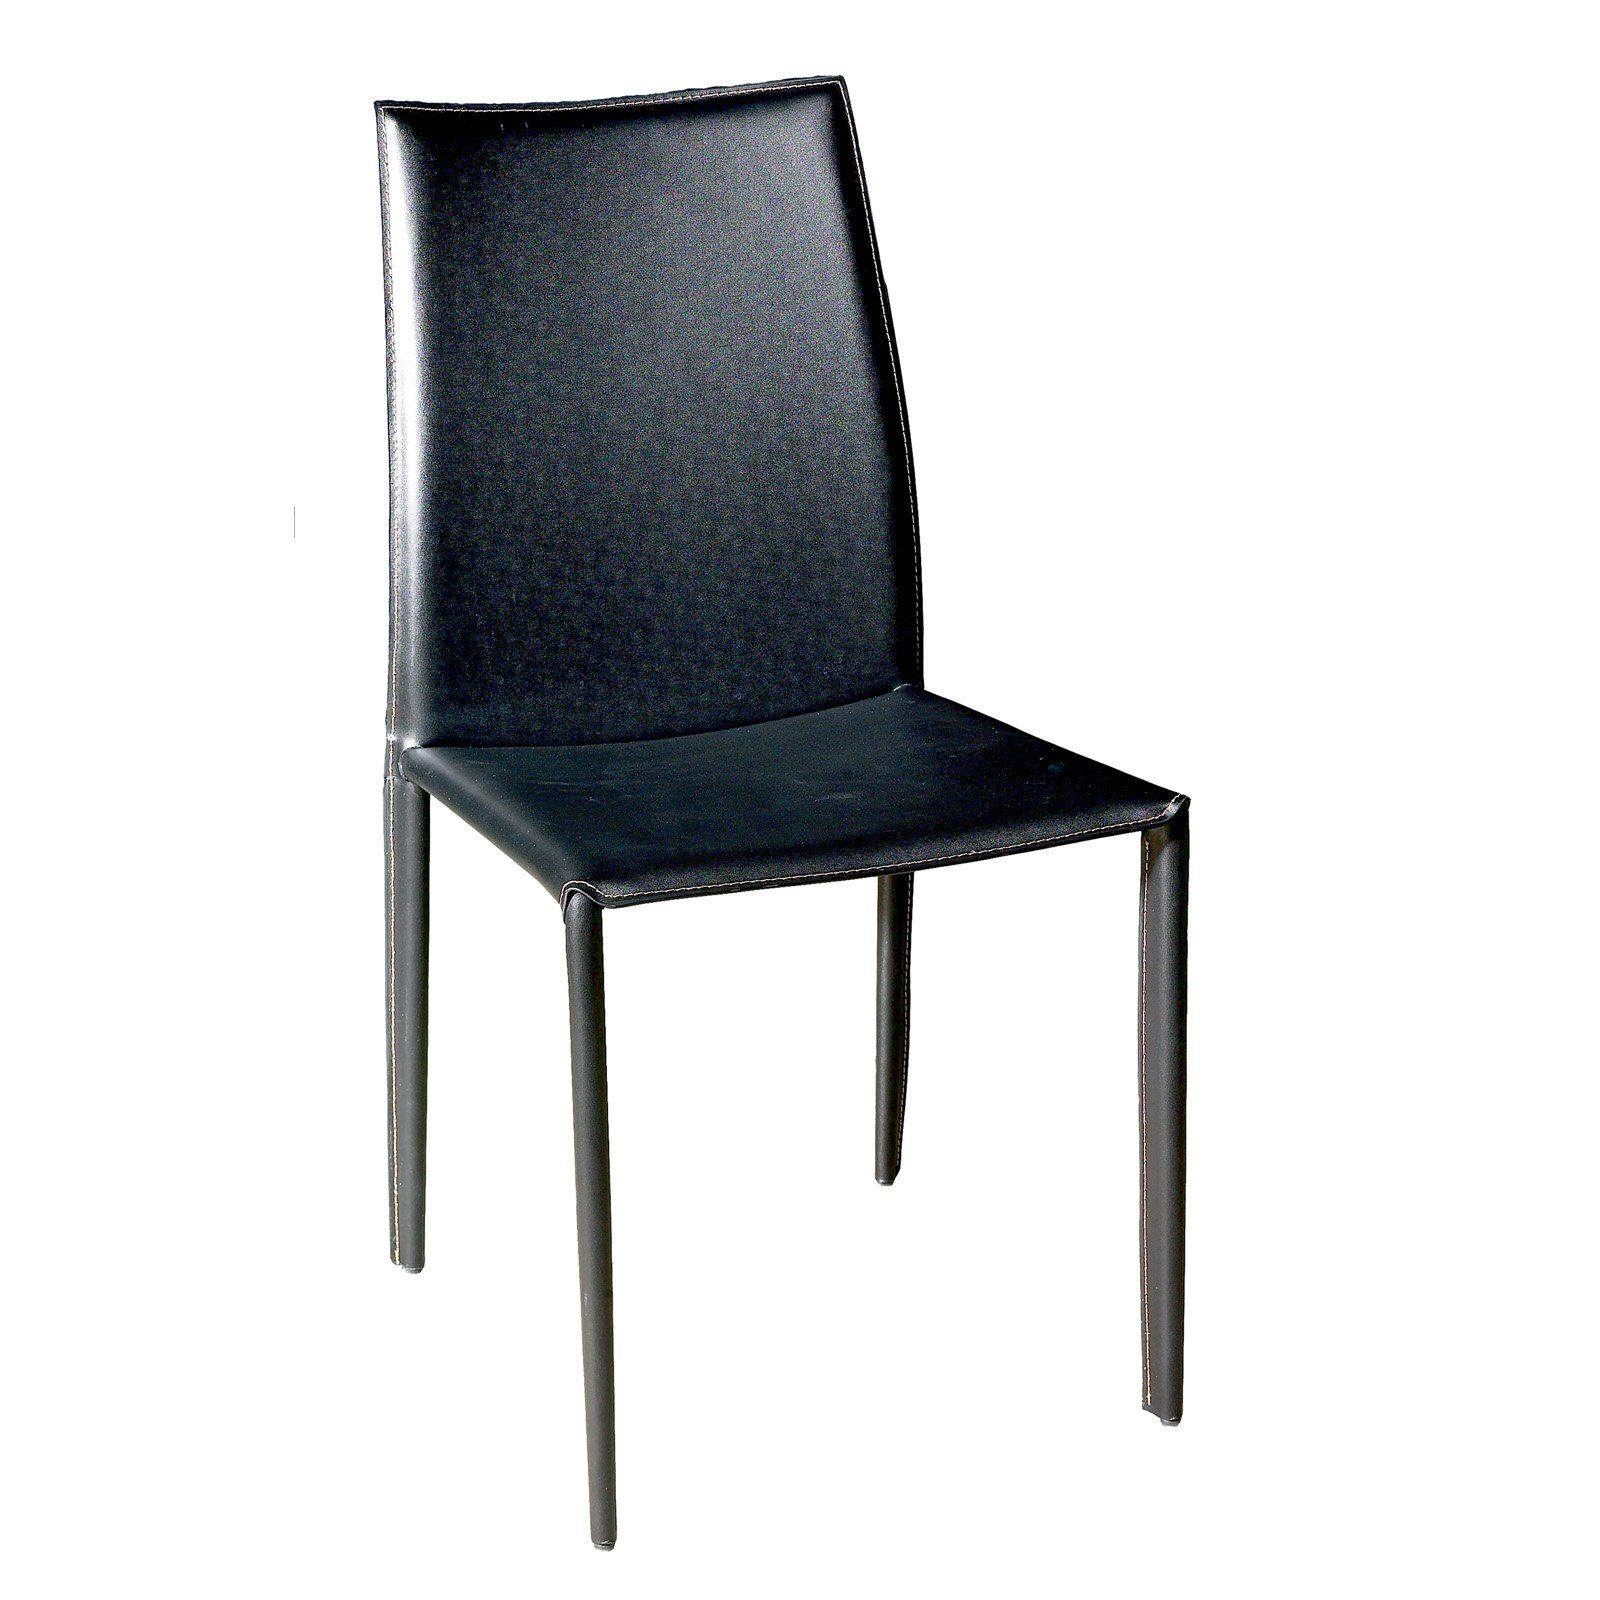 Baxton studio alicia dining chairset of 2 black leather